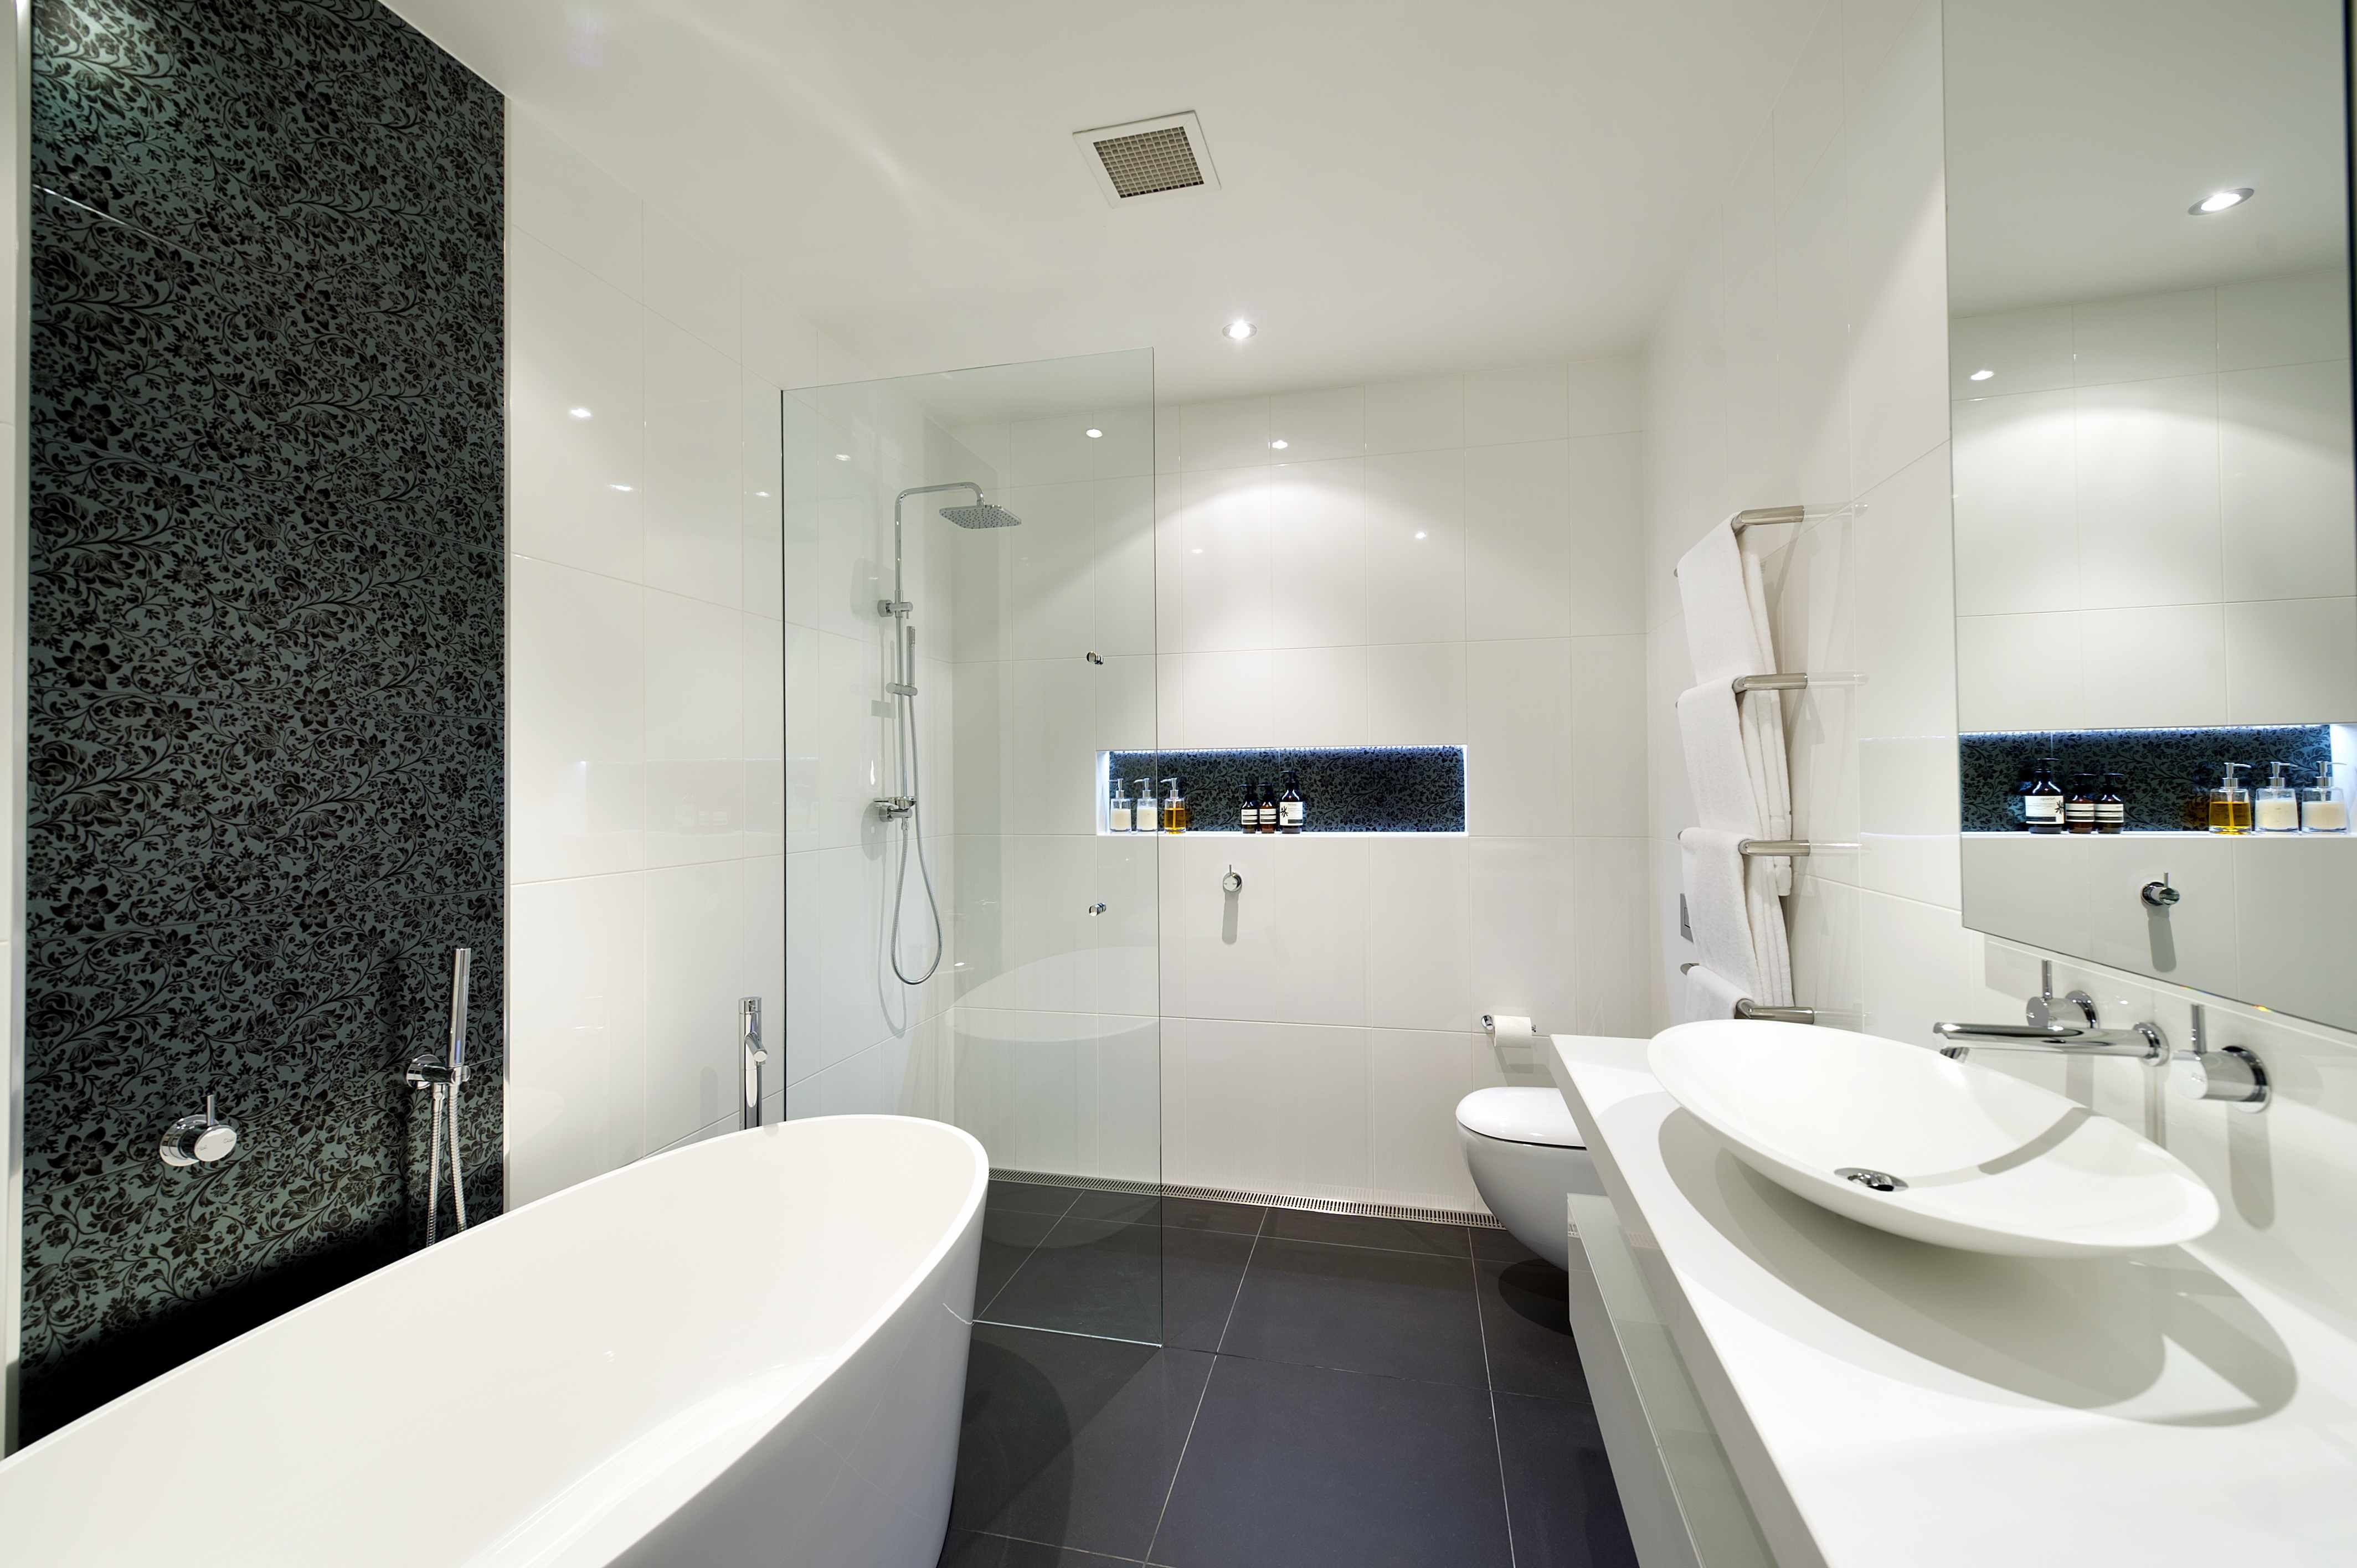 bathroom12.jpg 4,256×2,832 pixels | bathroom | Pinterest | City ...